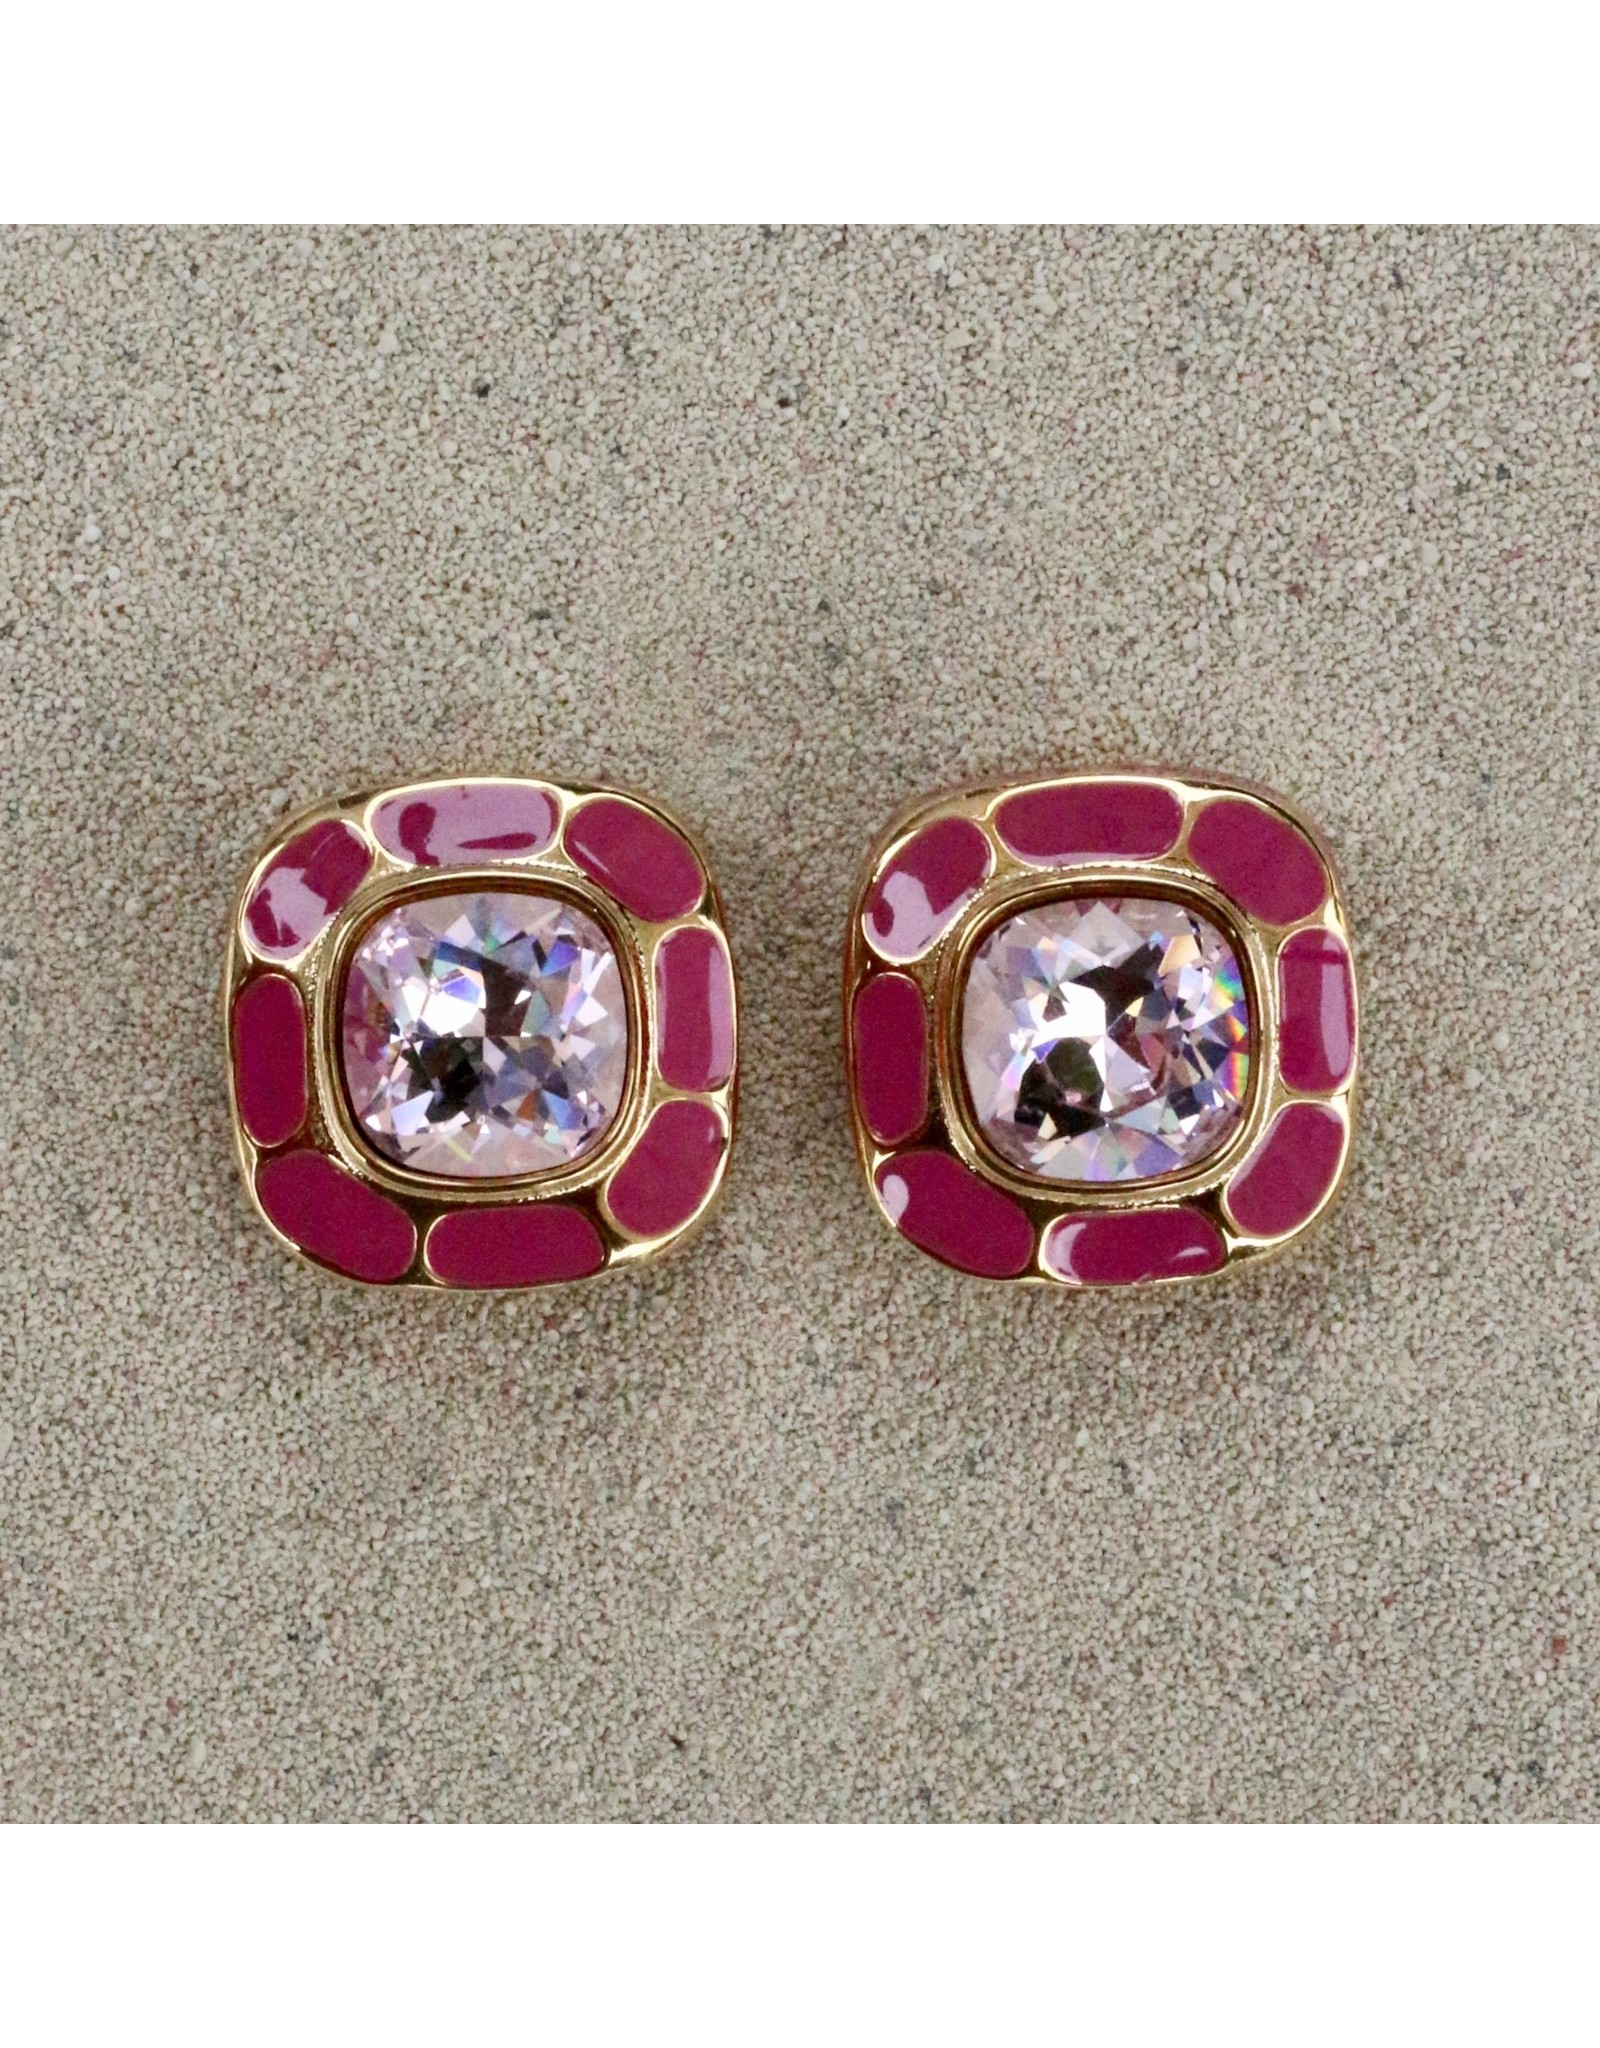 VC Italy VCExclusives: Square in Square Light Amethyst